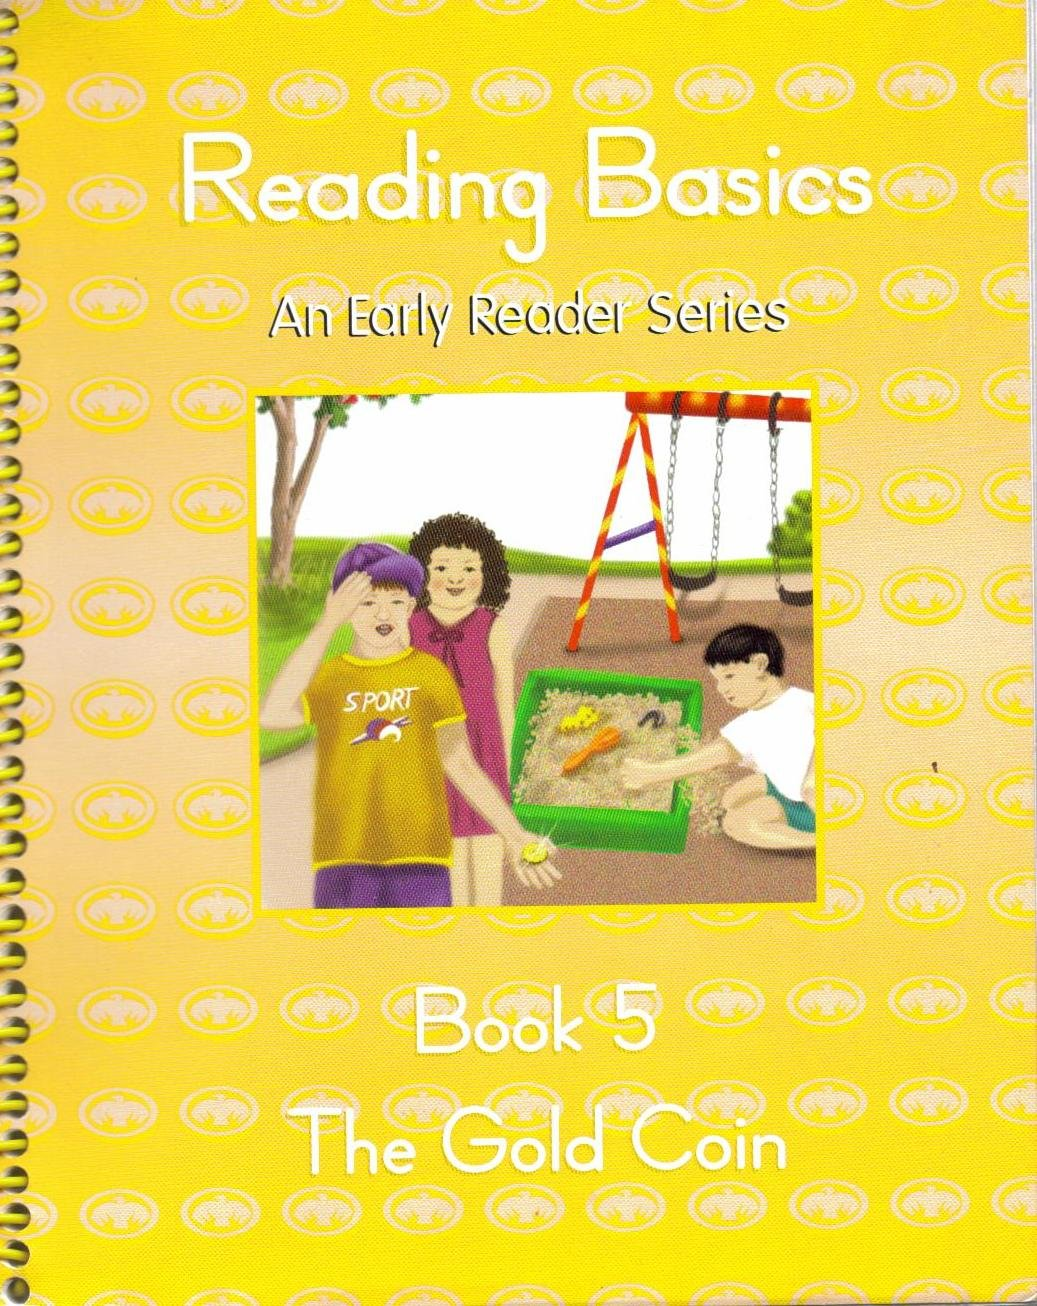 Download Reading Basics Book 5 (The Gold Coin) PDF